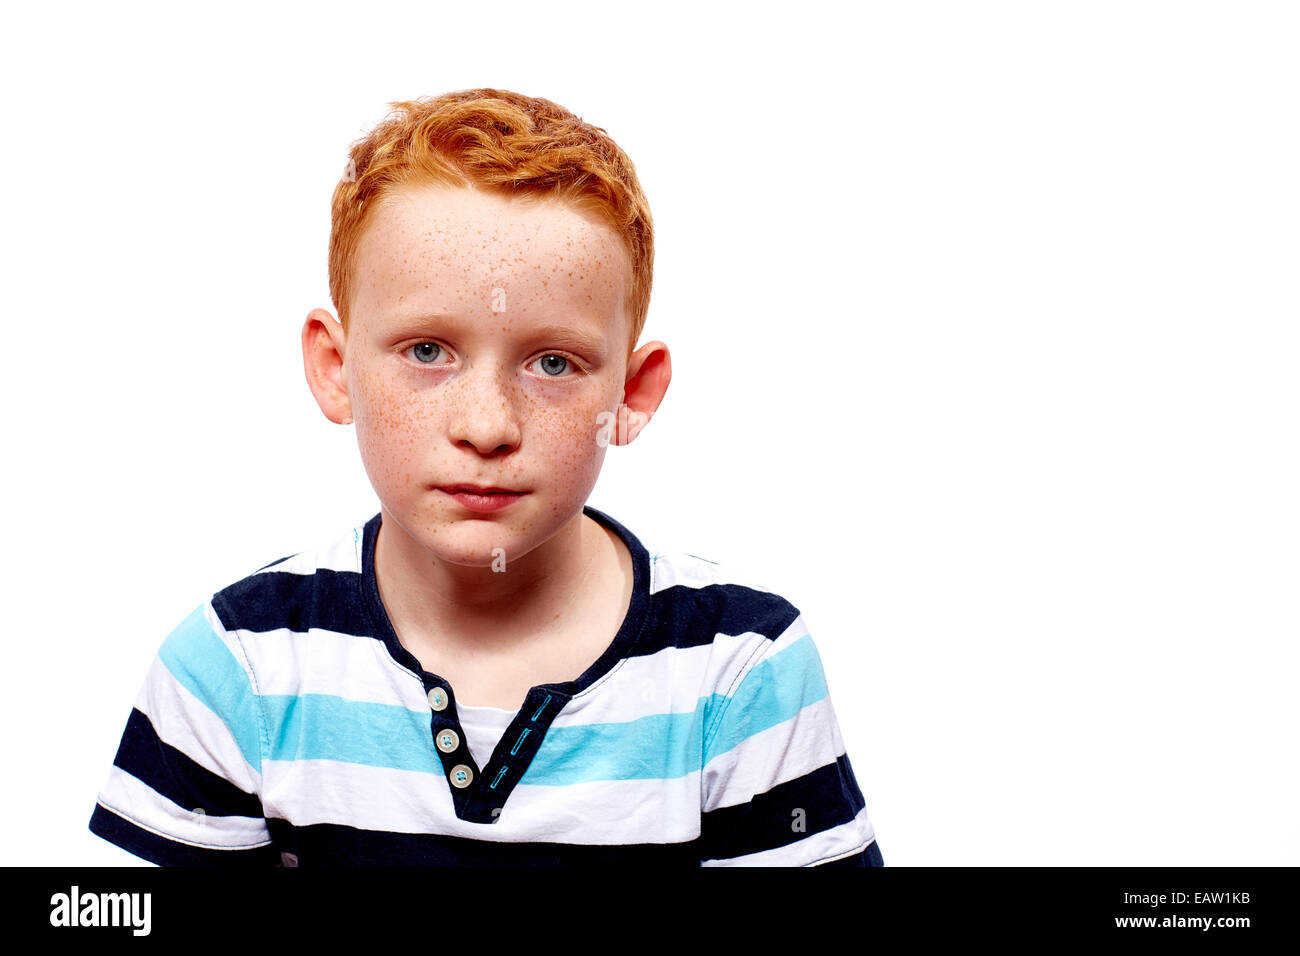 boy looks dissatisfied - Stock Image